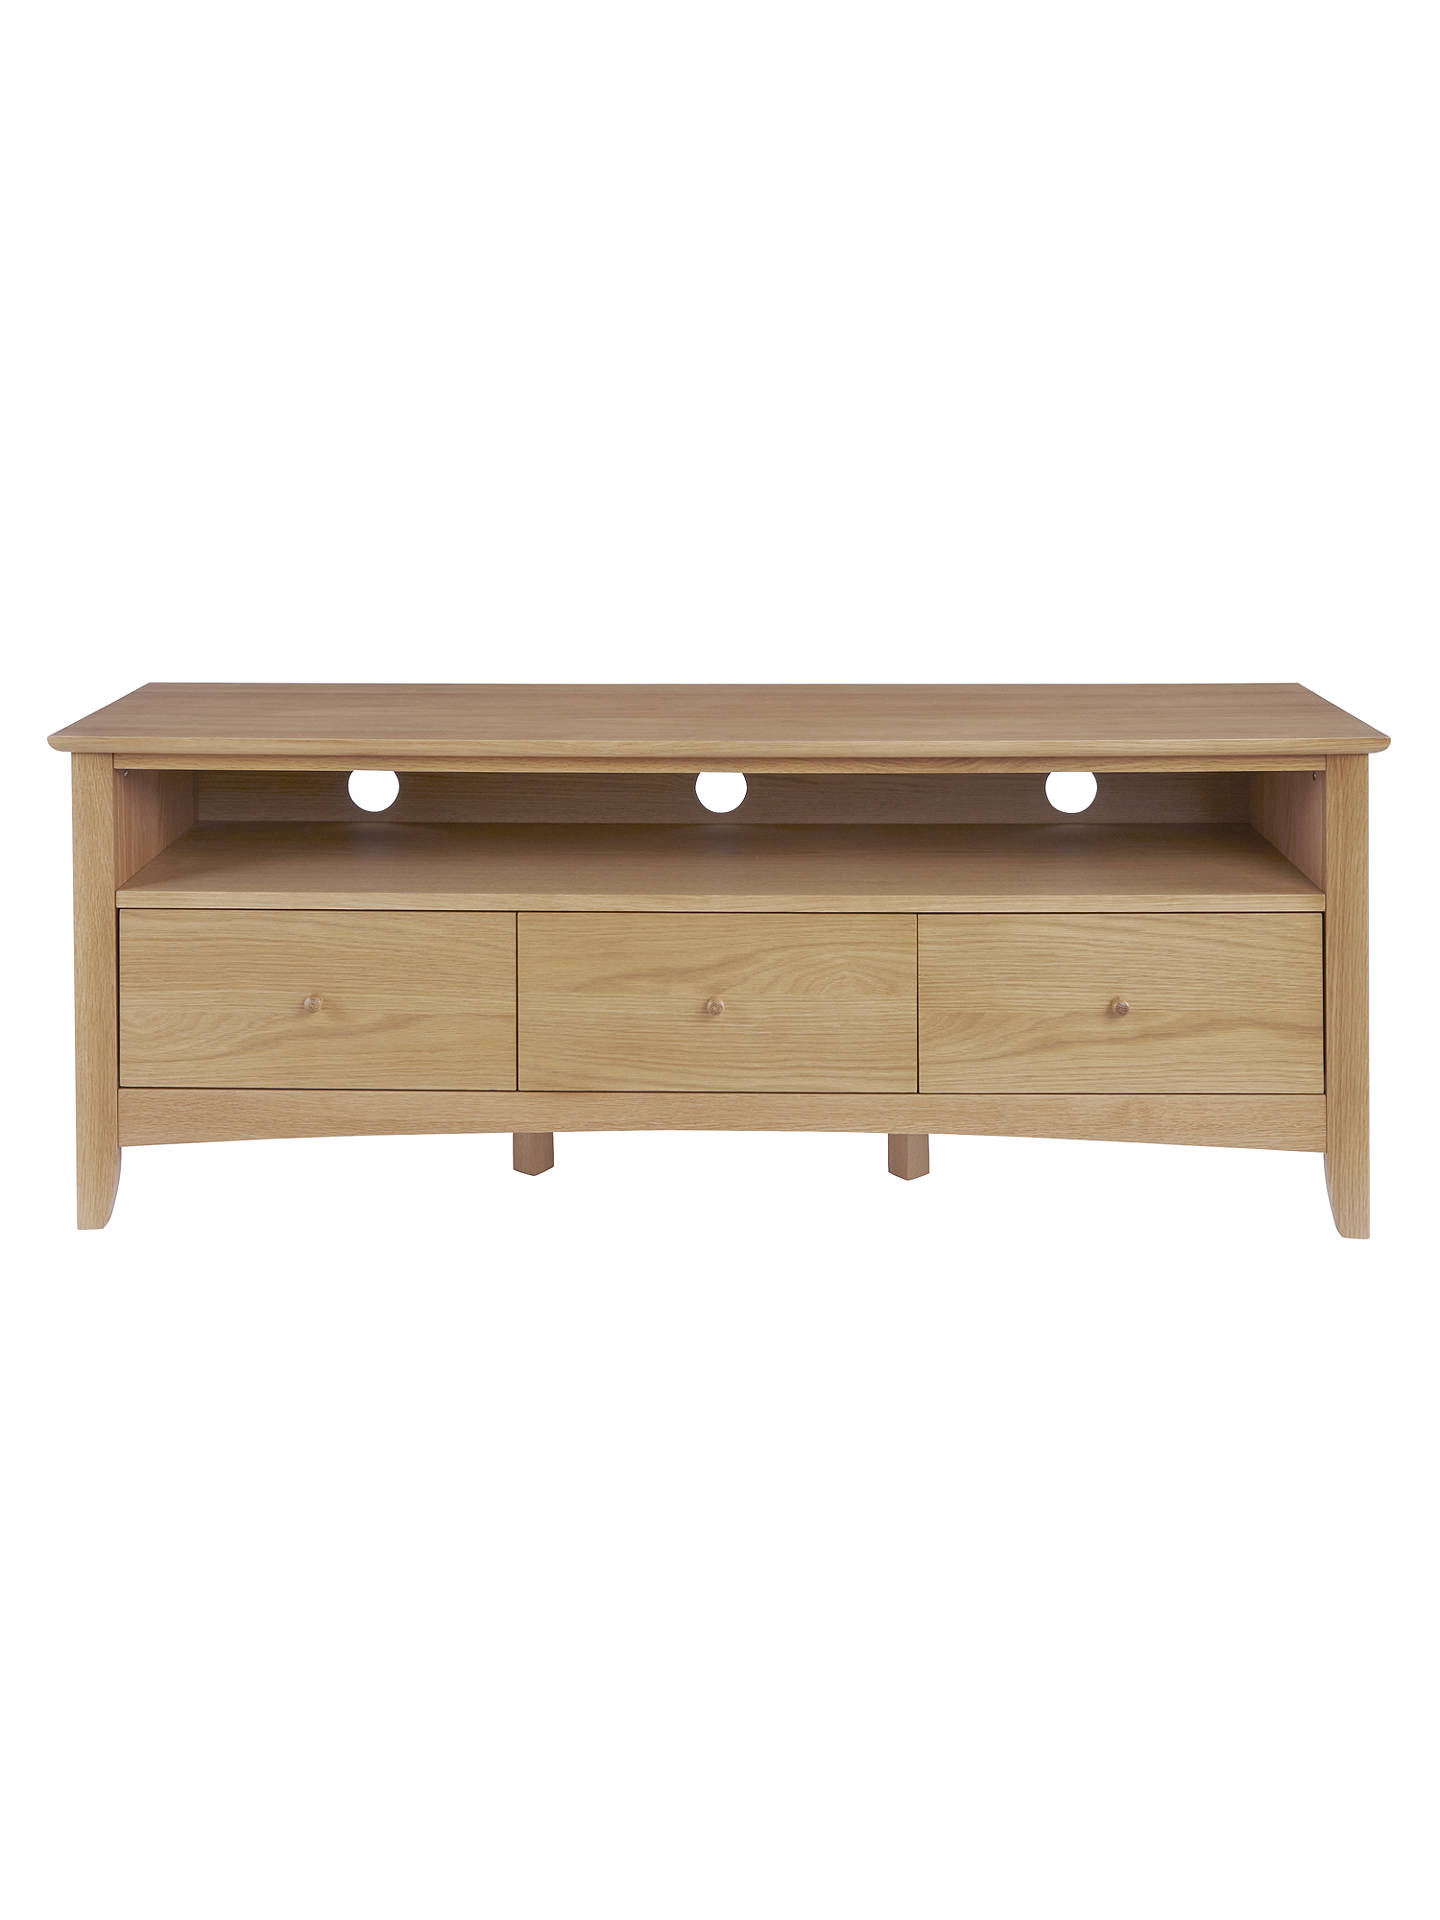 BuyJohn Lewis & Partners Alba TV Stand, Oak Online at johnlewis.com